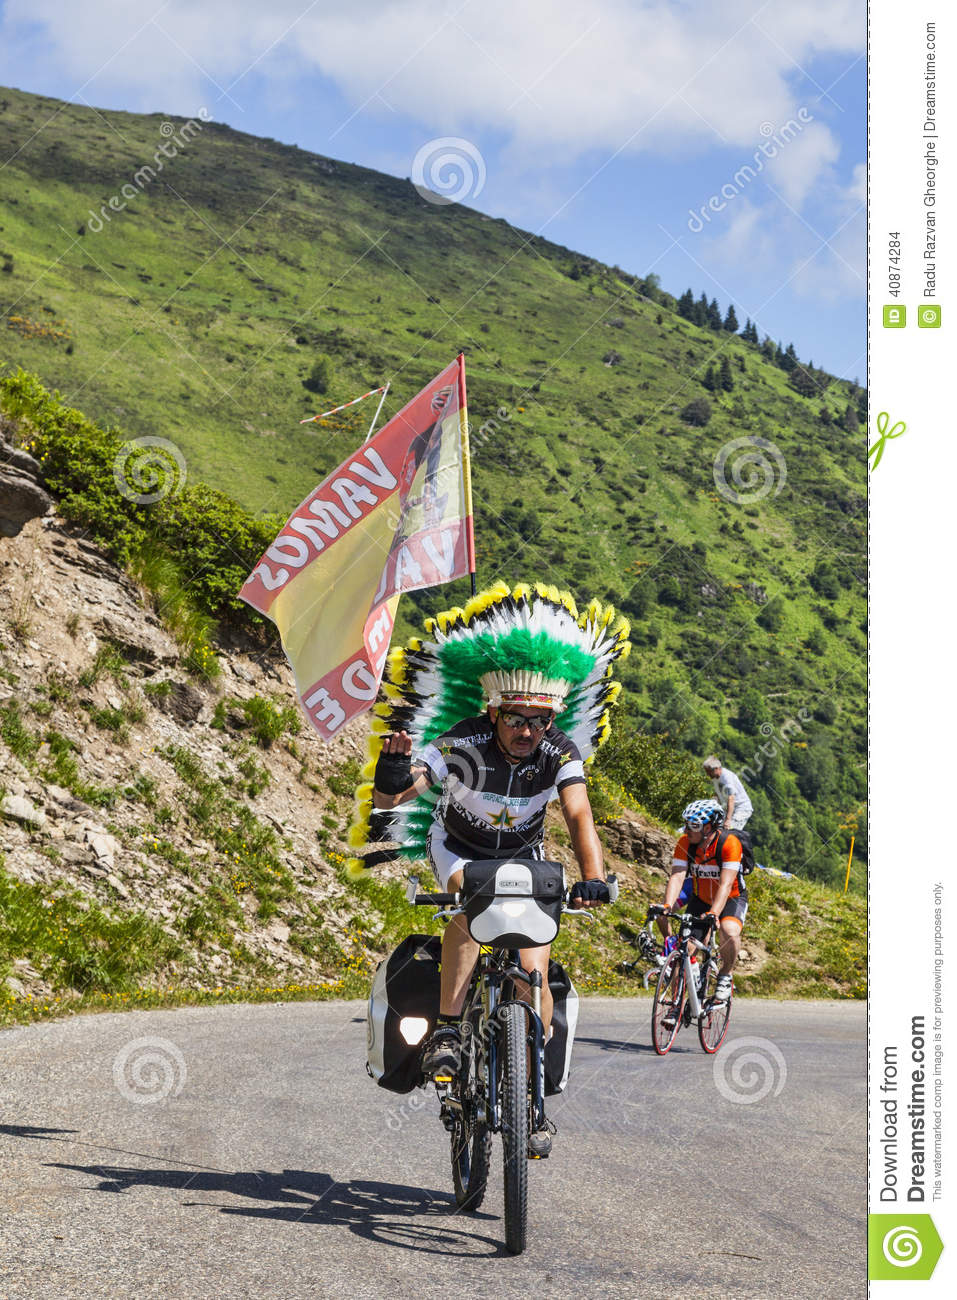 Amateur Cyclist in Pyrenees Mountains